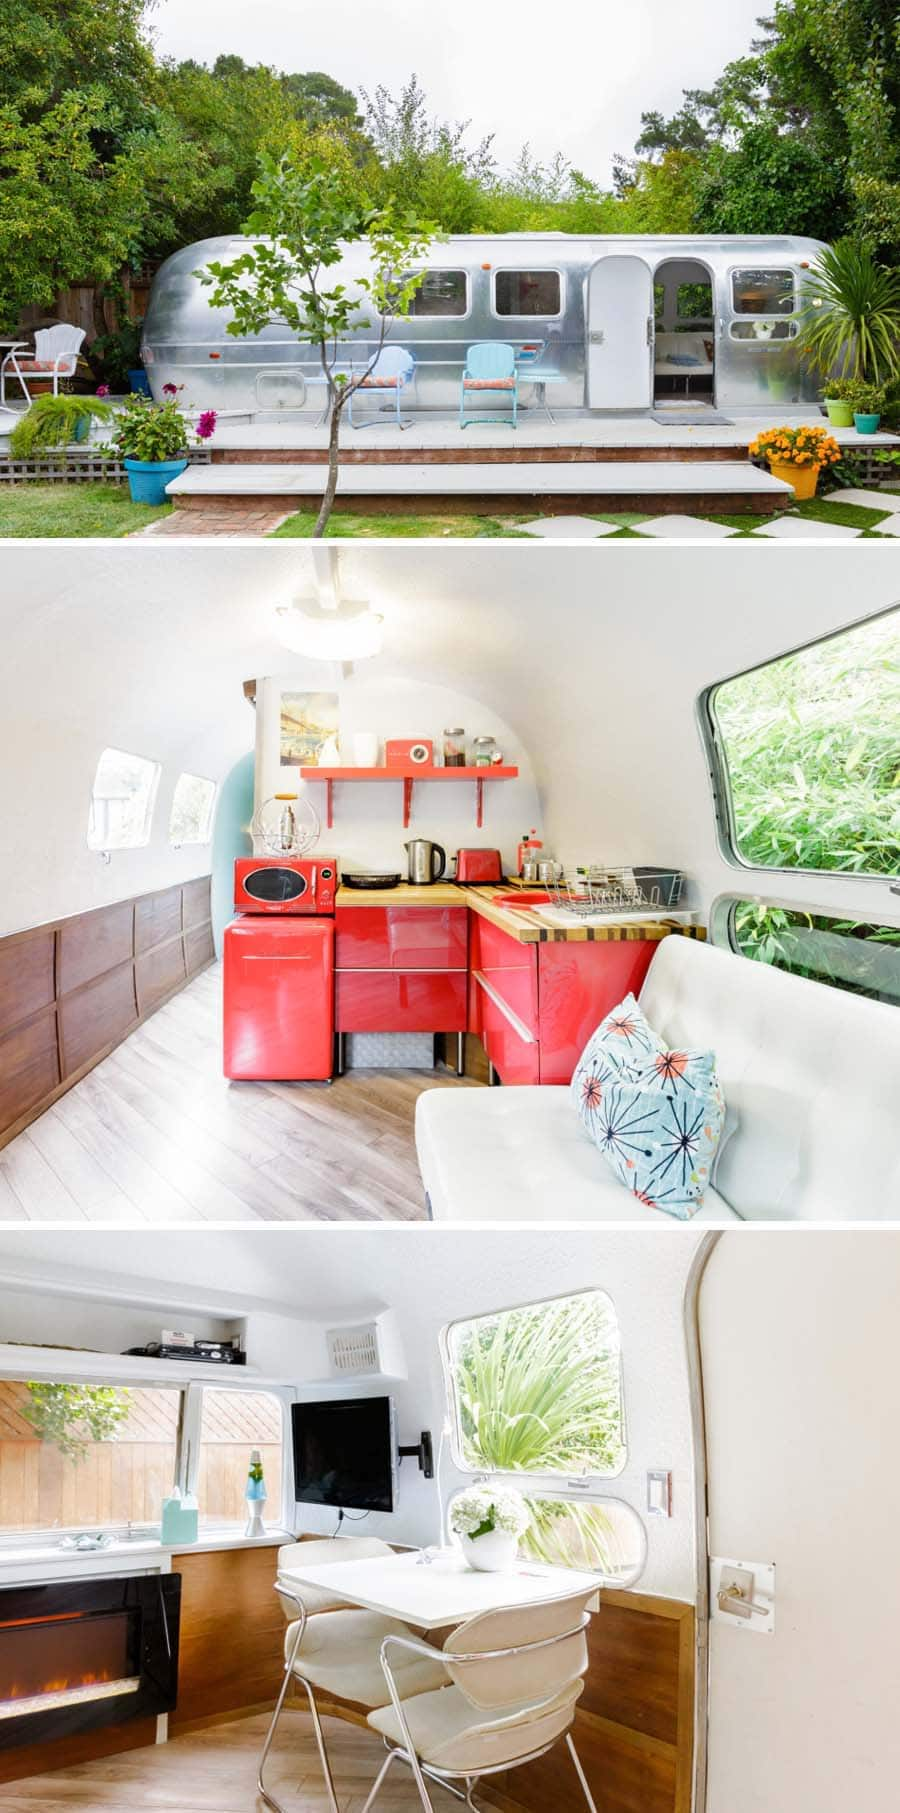 Retro airstream Airbnb in Mill Valley, California